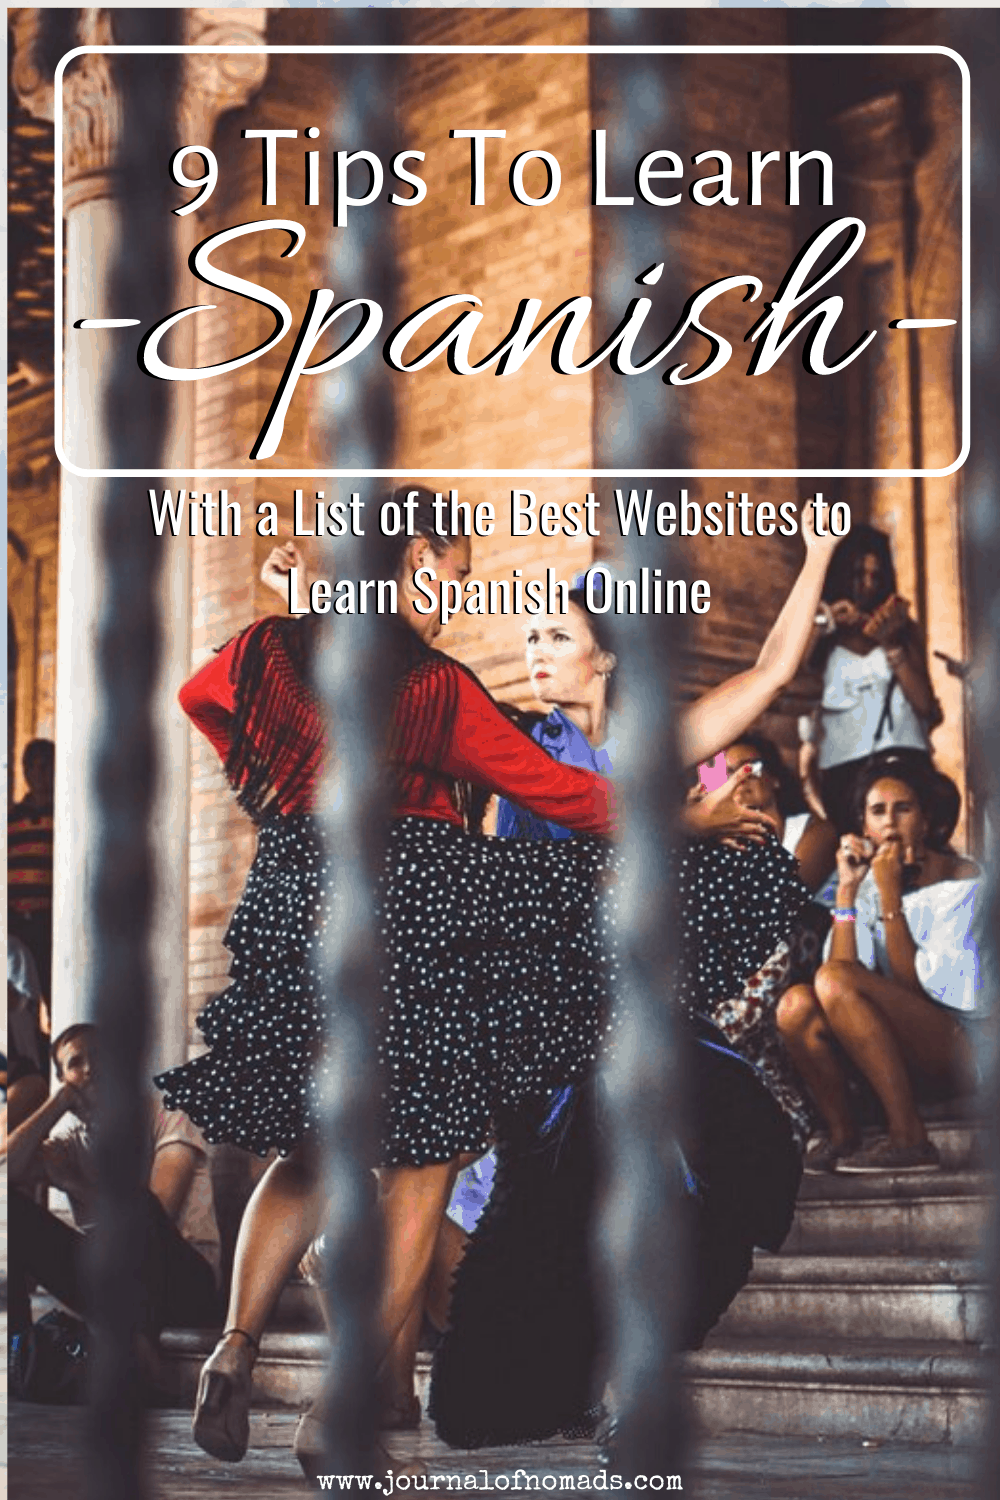 how to learn Spanish - best tips to learn Spanish